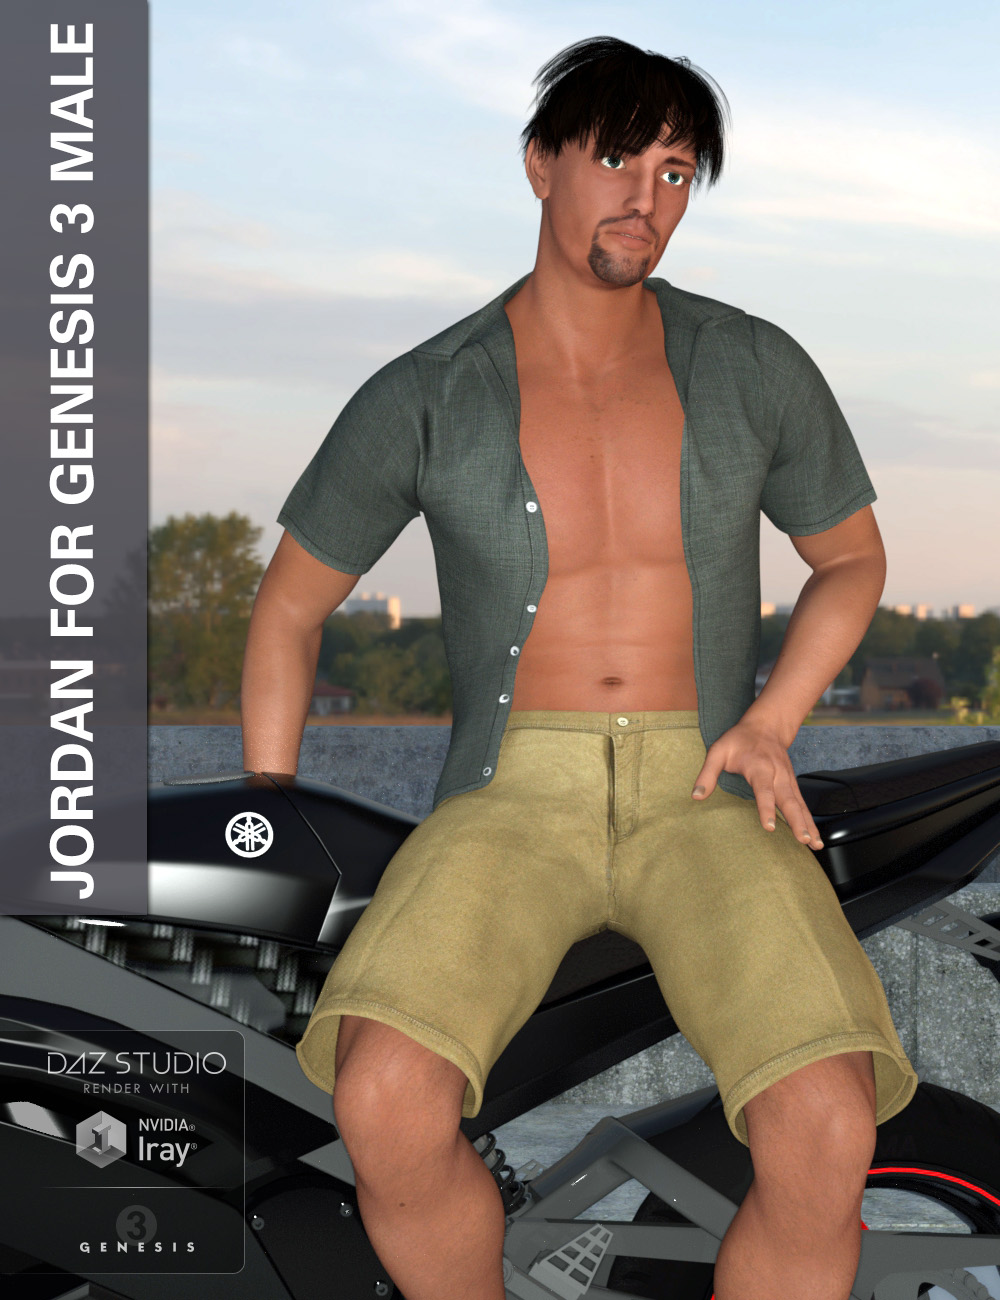 Jordan - Male Character for Genesis 3 Male